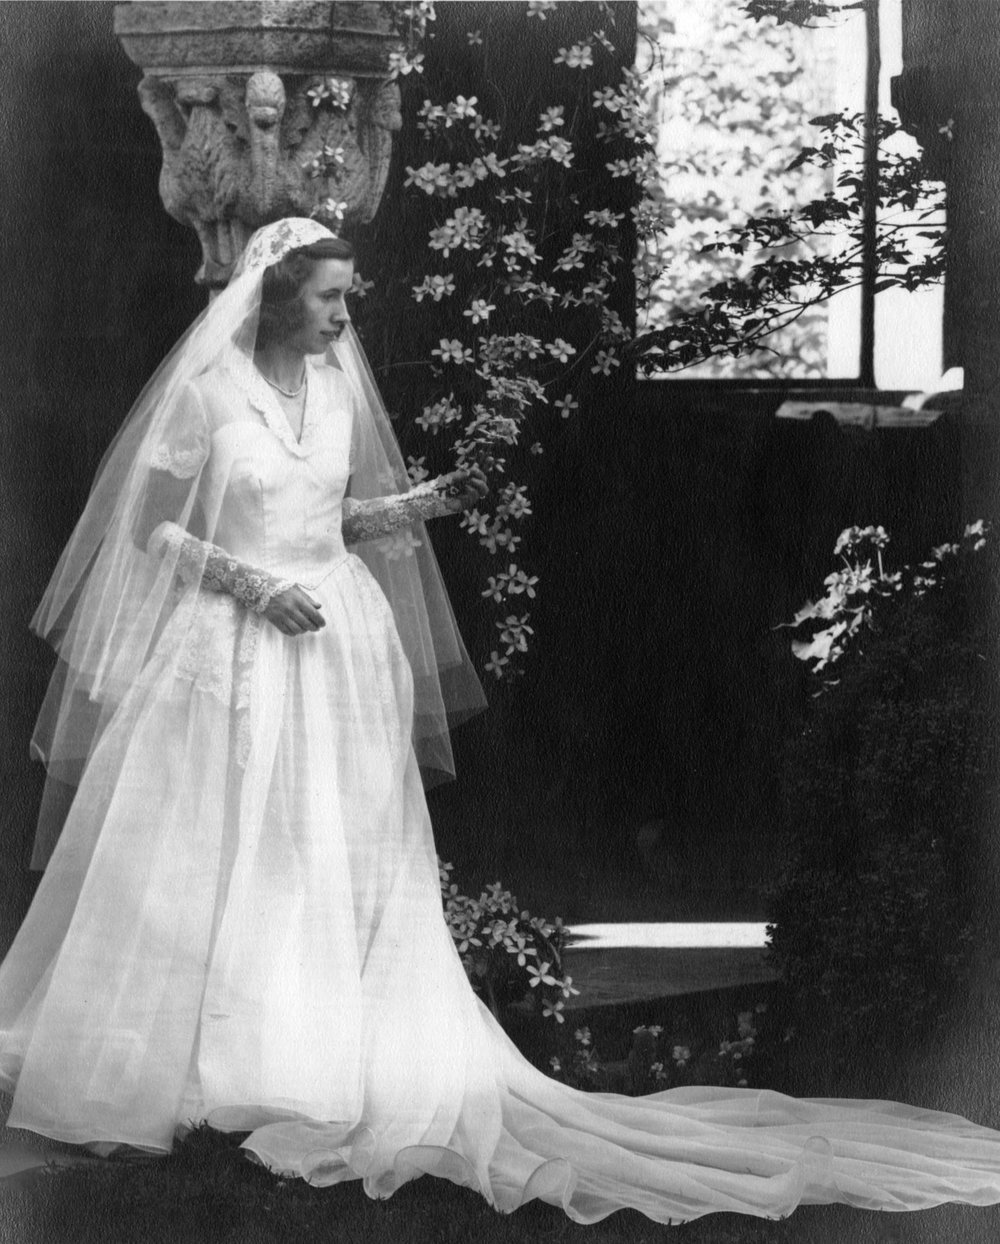 Figure 8: Eleanor Stroh (Hansen), who worked at Glencairn for the Pitcairn family, was photographed in the cloister in 1951 in her wedding dress. The wedding dress was a gift from the Pitcairns. Glencairn Museum continues the tradition of wedding photography in the cloister.